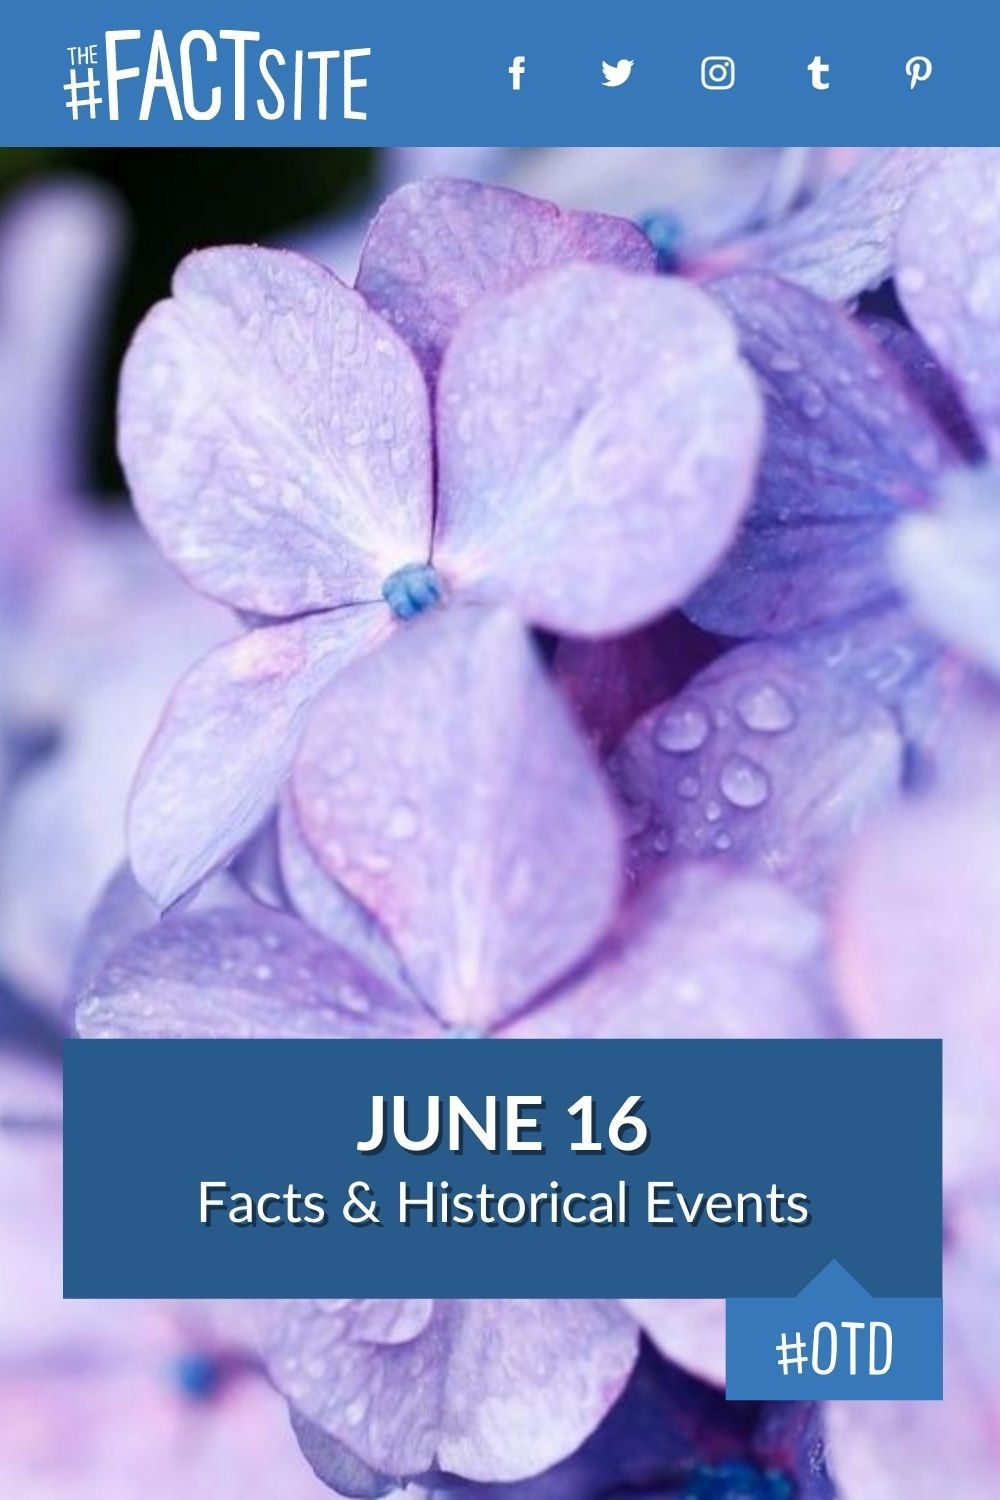 Facts & Historic Events That Happened on June 16